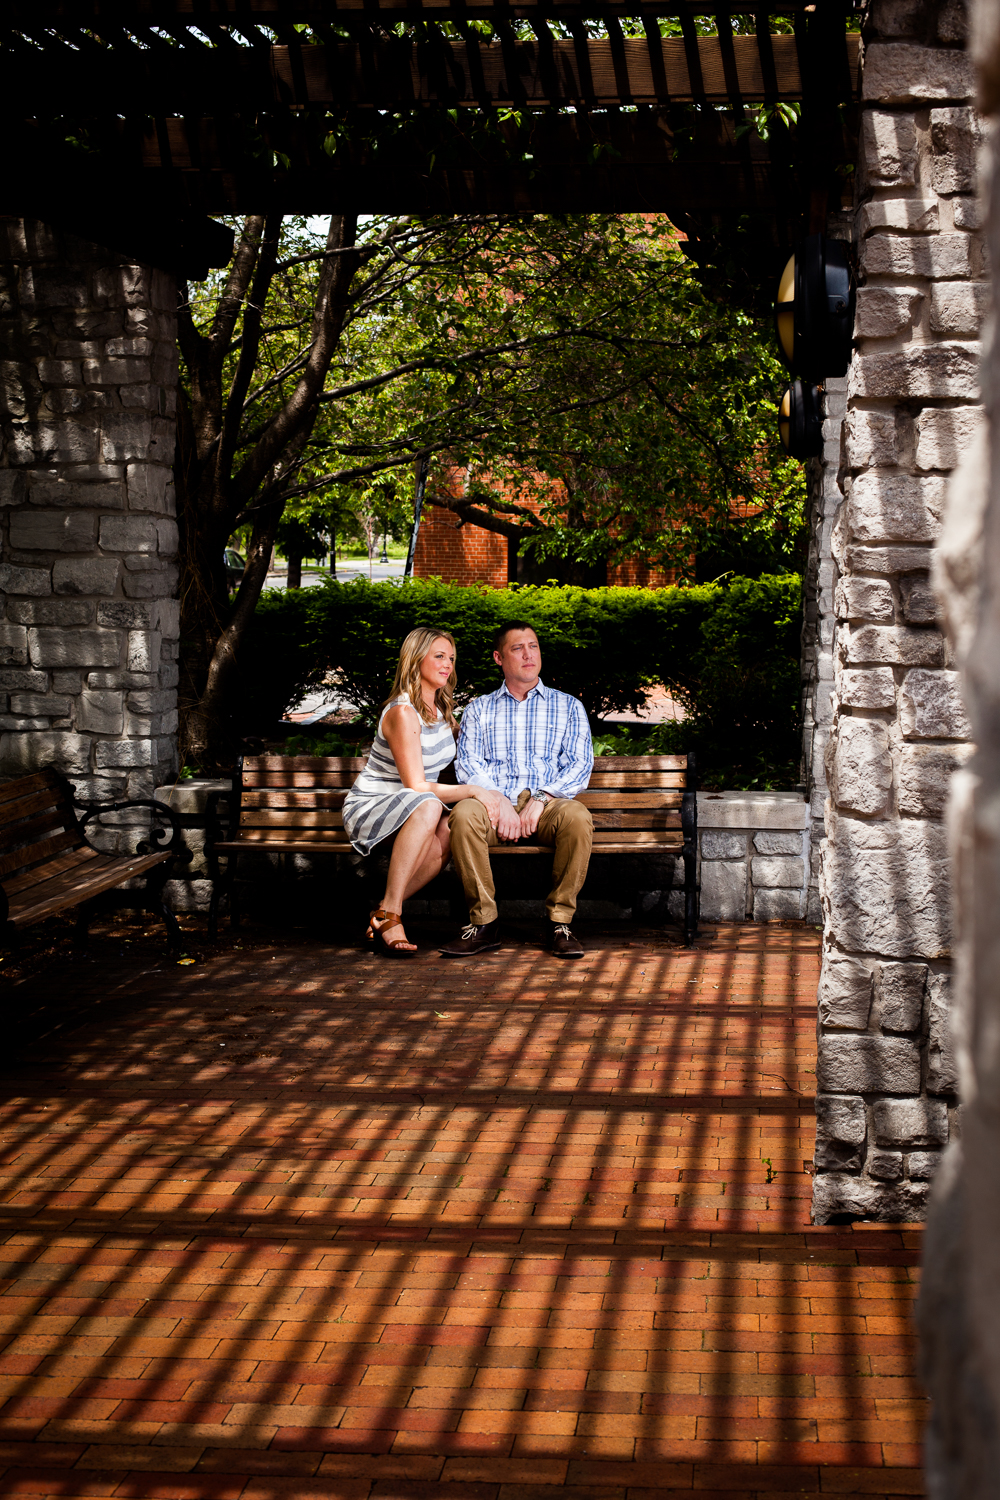 Bride and groom in shadows sitting on park bench.